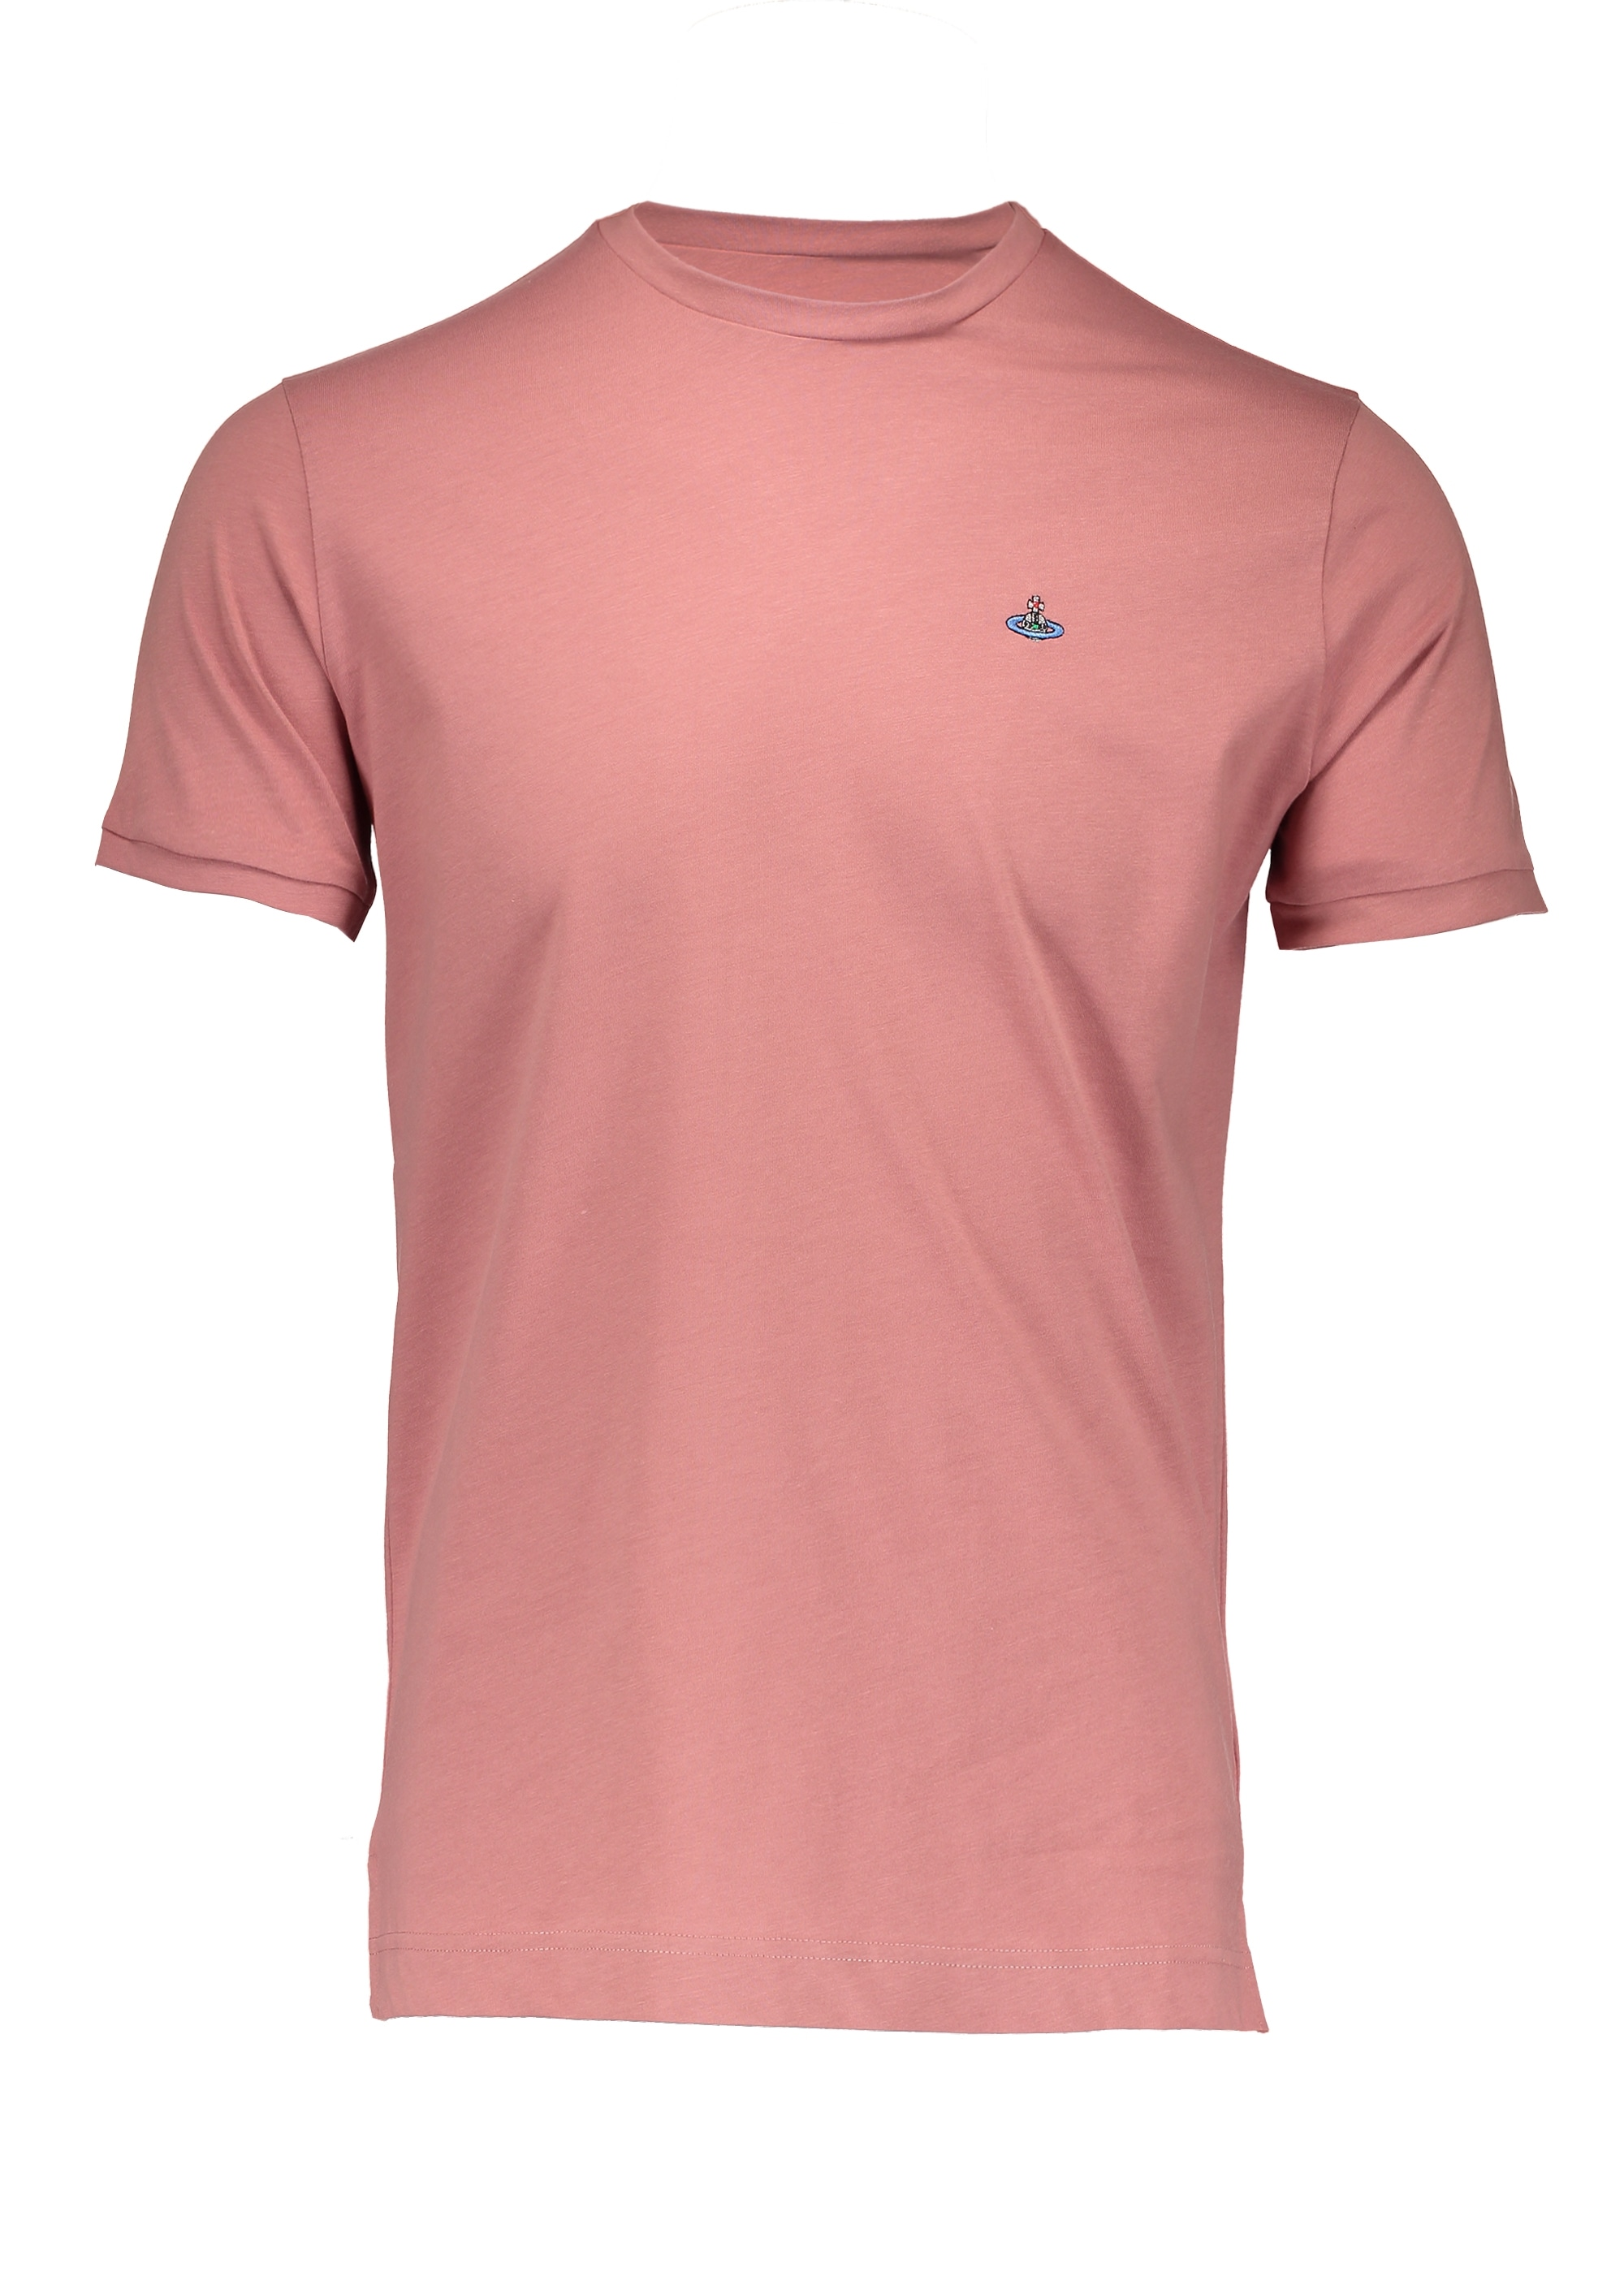 Embroidered logo t shirt pink from triads uk for How to embroider t shirts